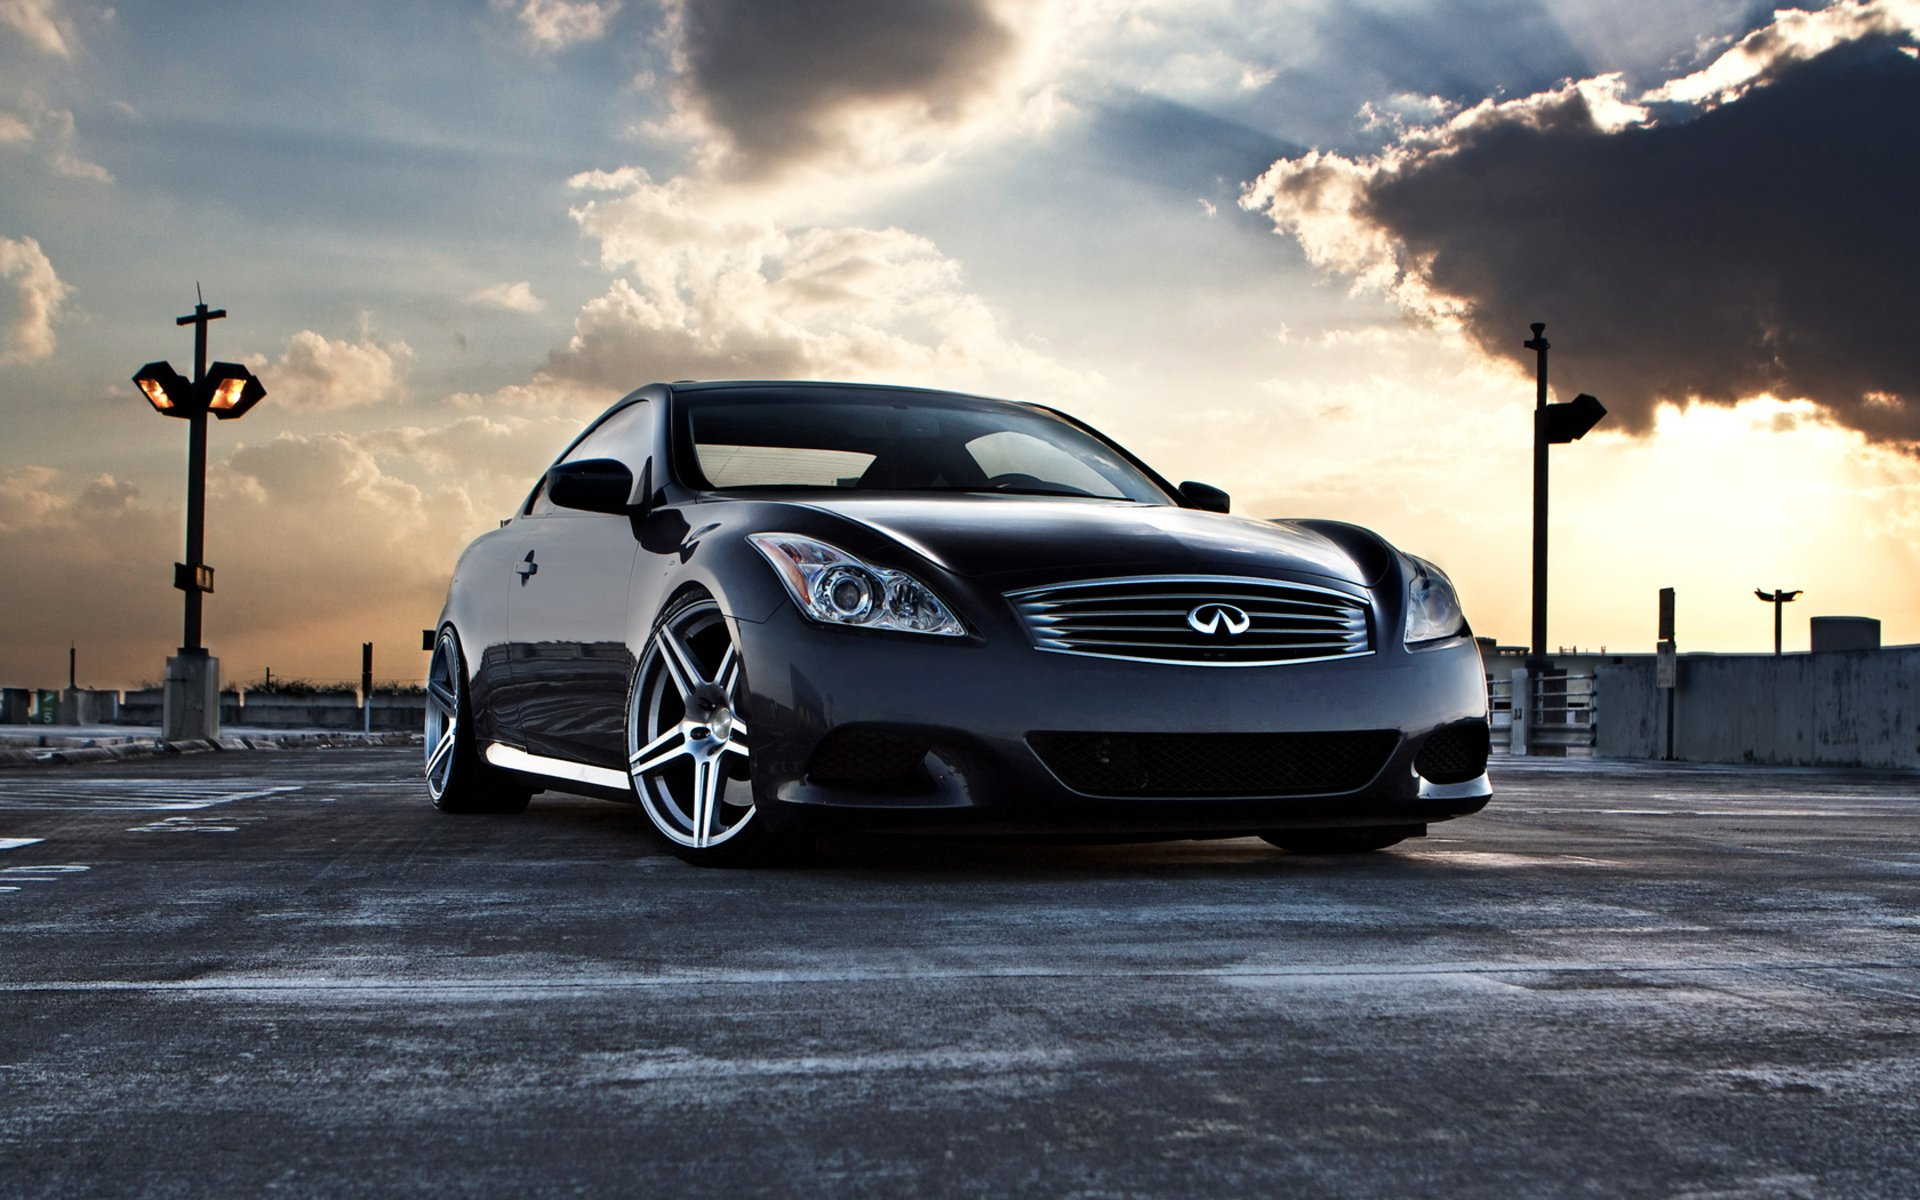 Infiniti G37 Wallpapers and Background Images   stmednet 1920x1200